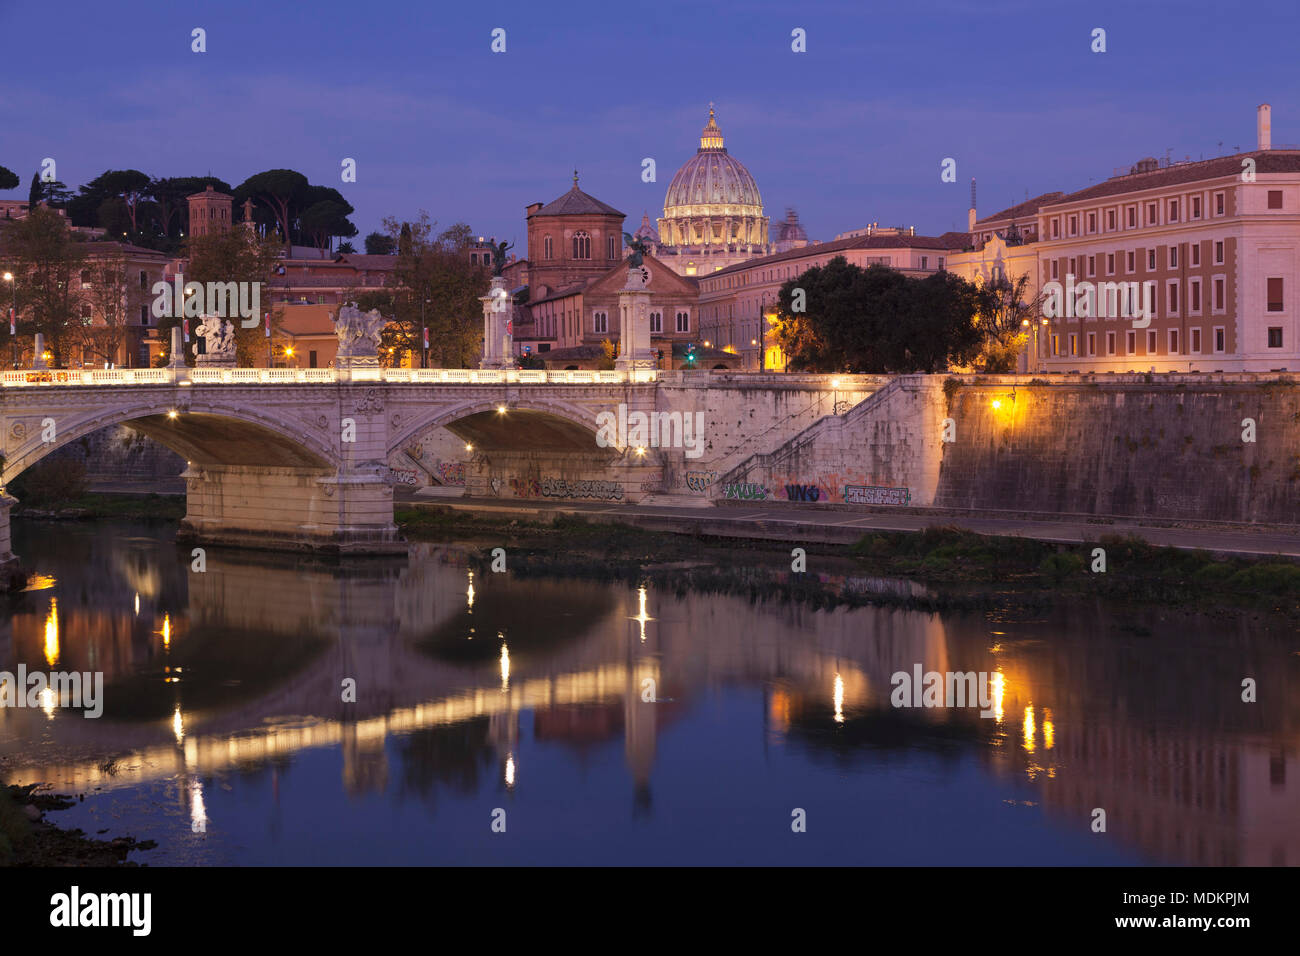 View over the Tiber to St. Peter's Basilica at dusk, Rome, Lazio, Italy - Stock Image